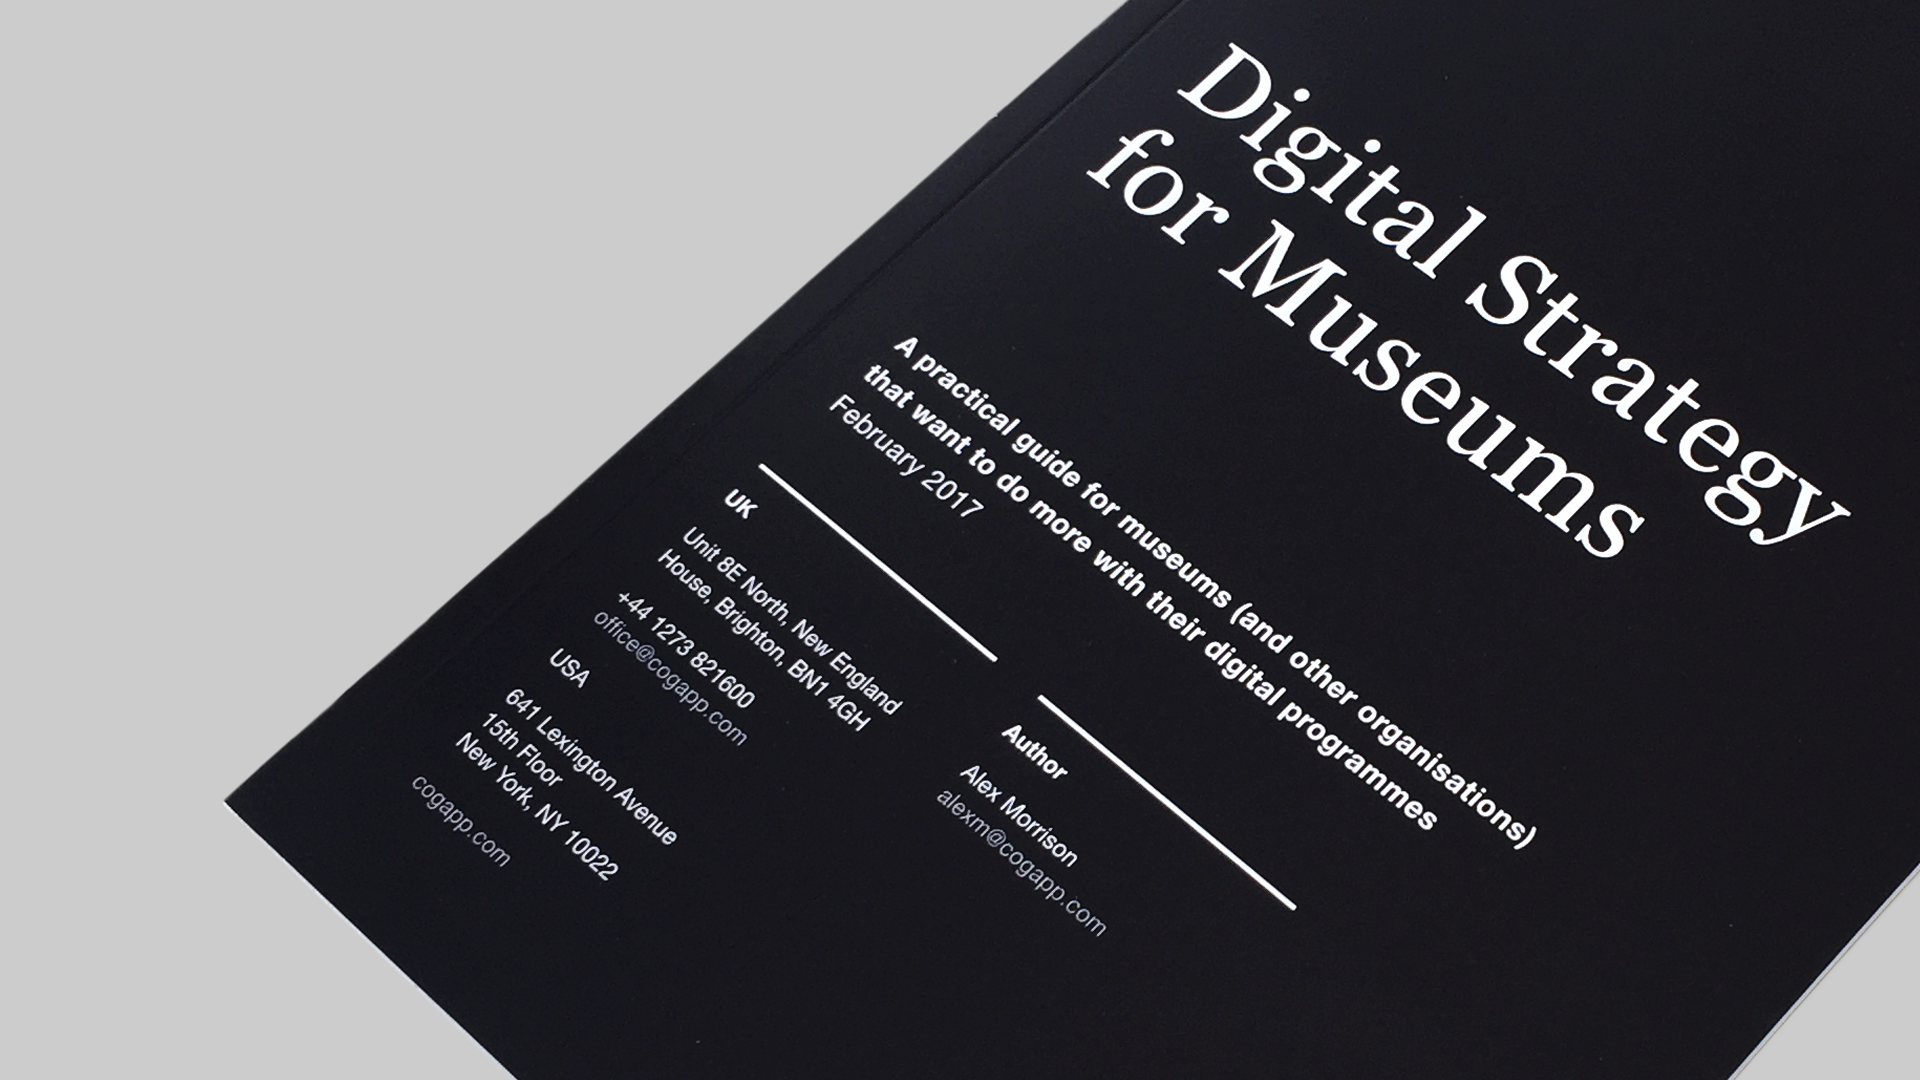 Digital Strategy for Museums - Download your copy now.